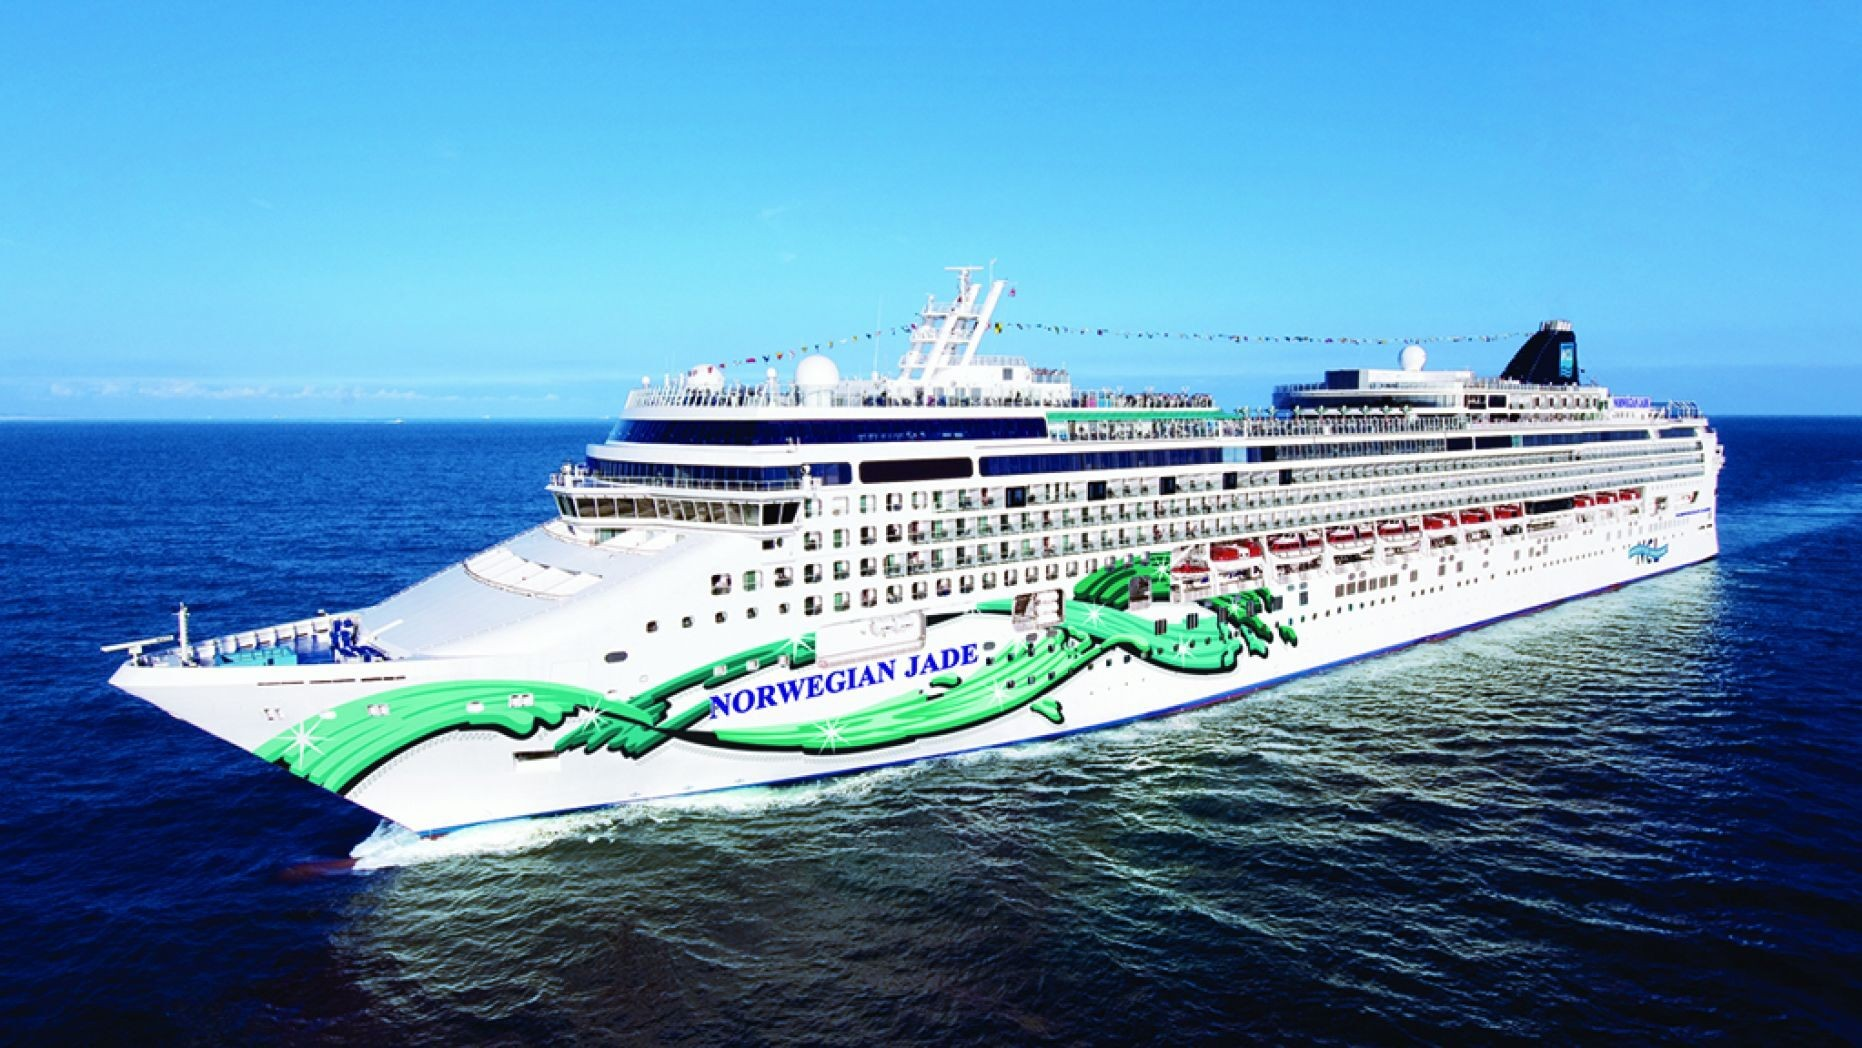 Norwegian Jade at Safaga, 28, 29 Mar 2020-Egypt Shore Excursions from Safaga Port